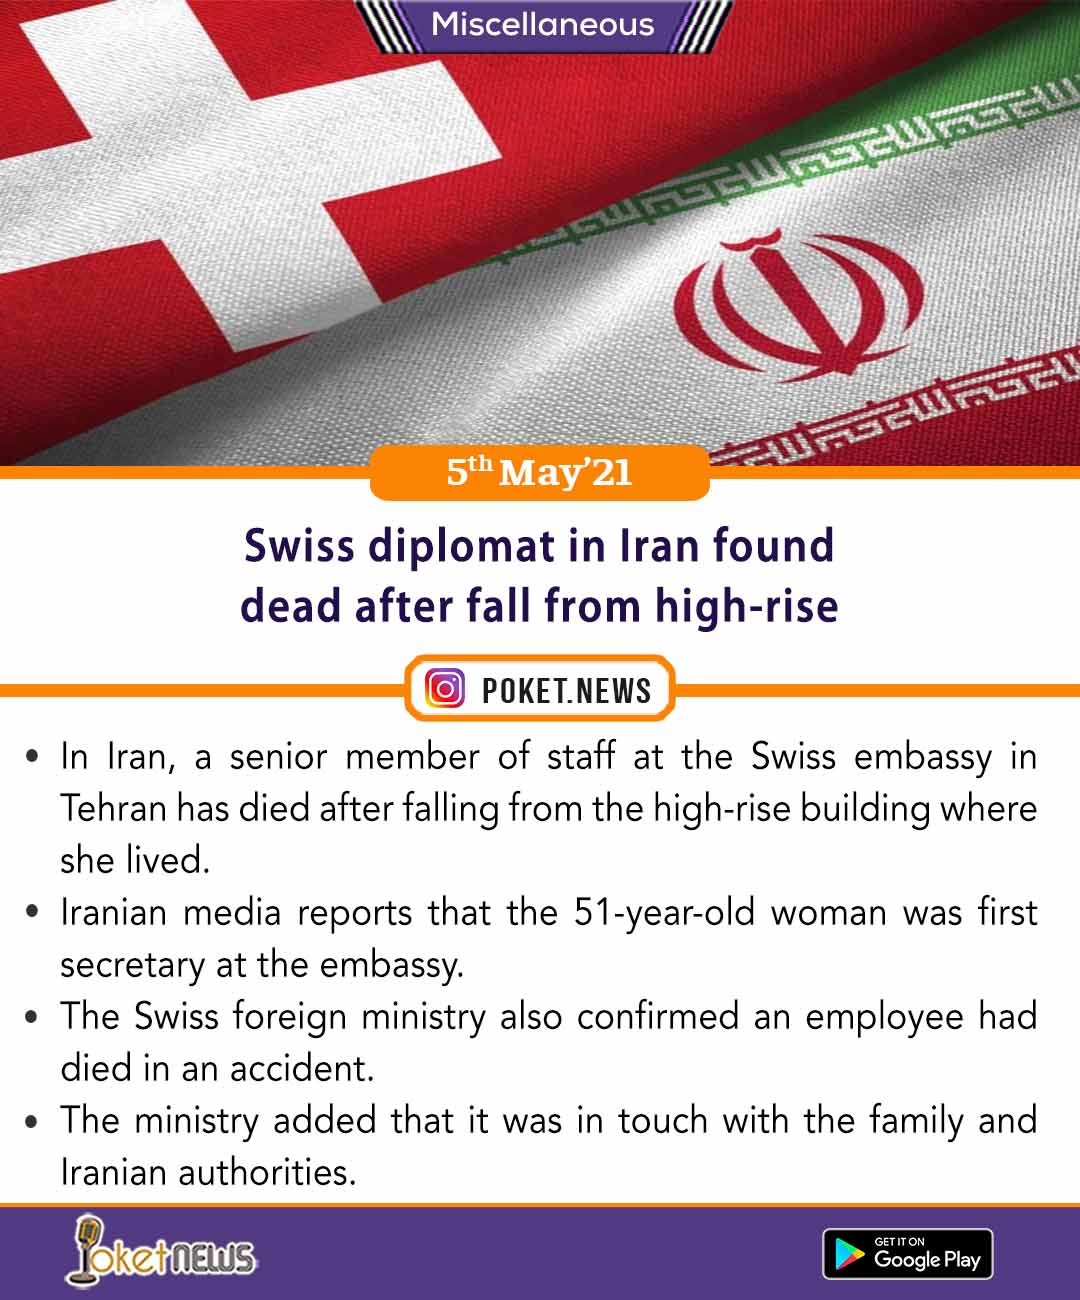 Swiss diplomat in Iran found dead after fall from high-rise